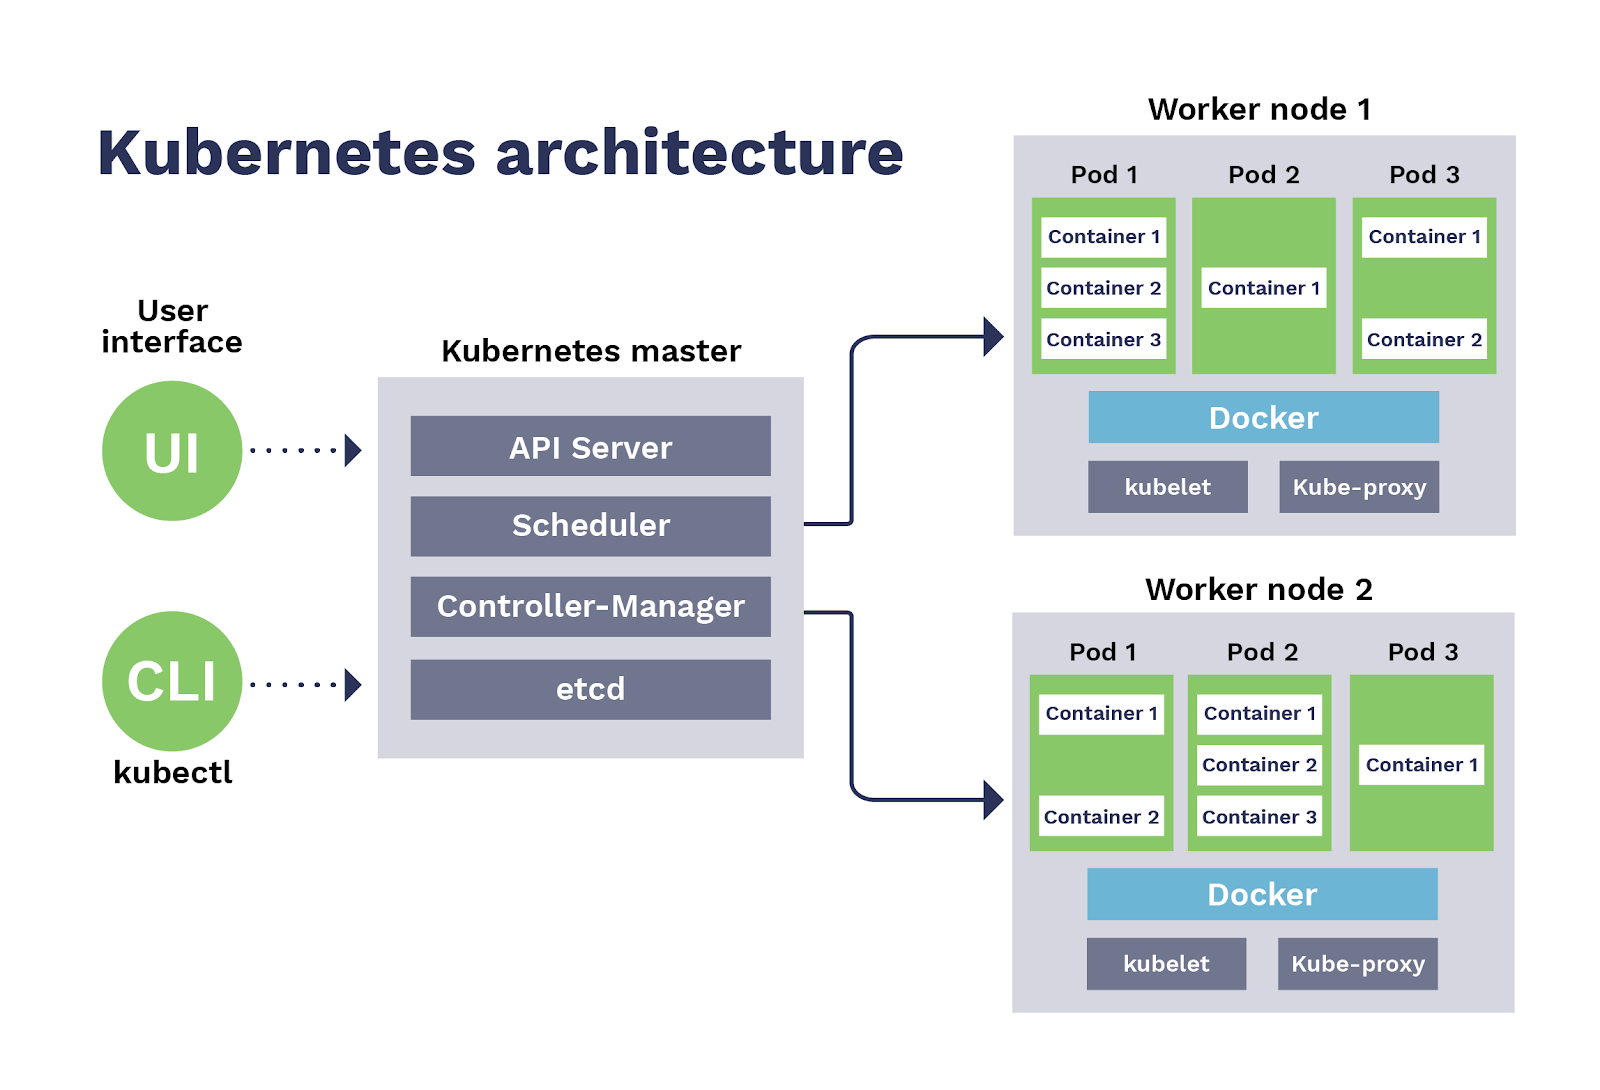 Kubernetes architecture in the enterprise